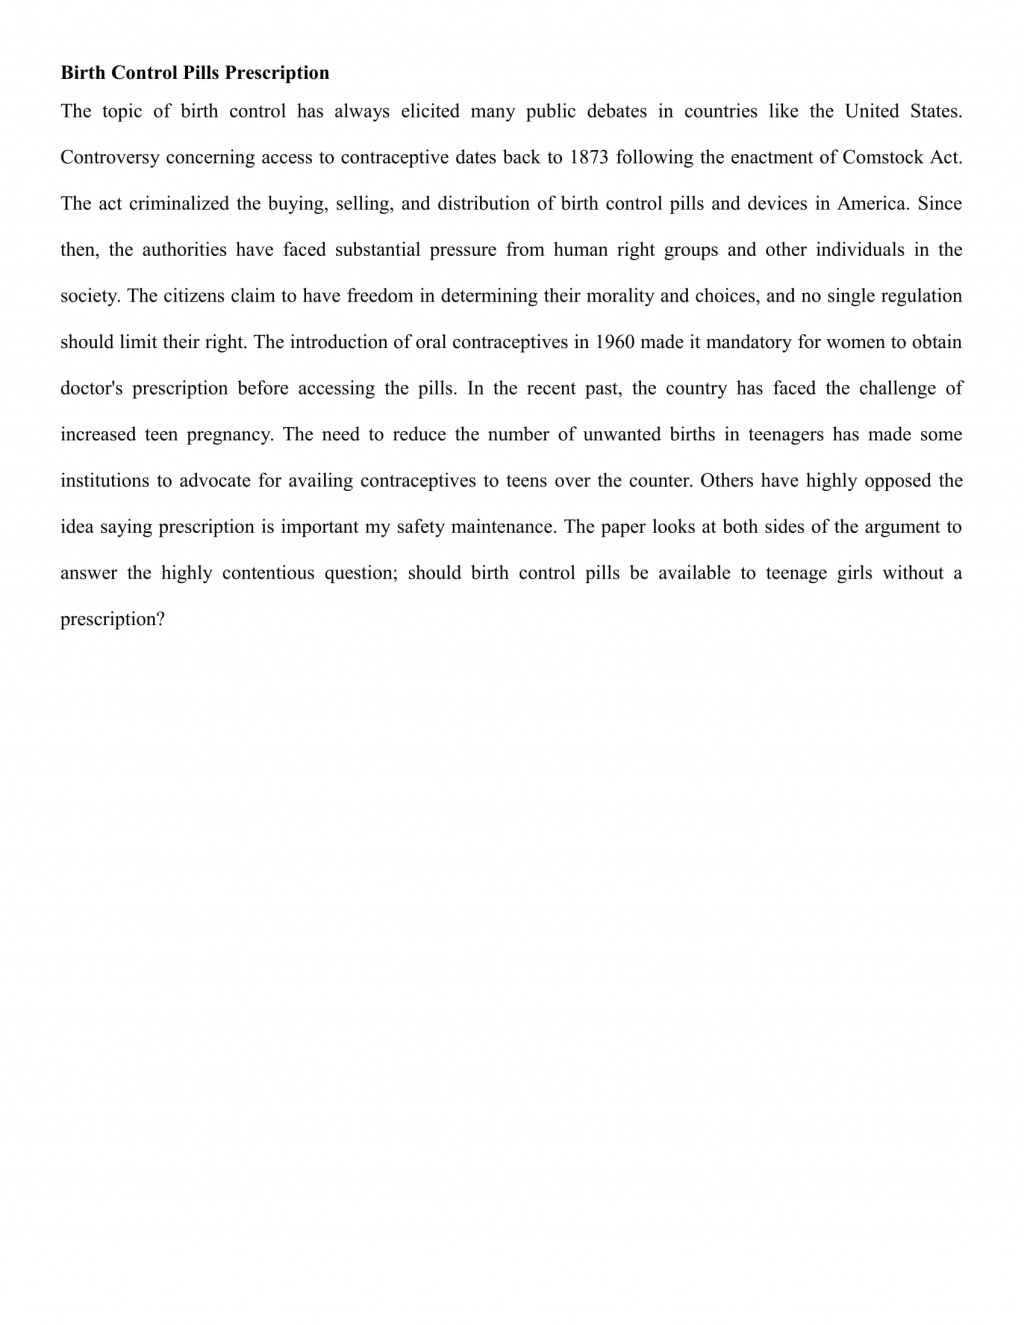 002 Teen Pregnancy Essay An On Teenage Birth Control Rights Term Paper Academic Service Argumentative About Pills Prescript Conclusion In The Philippines Introduction Example Of Short Amazing Pdf Body Large